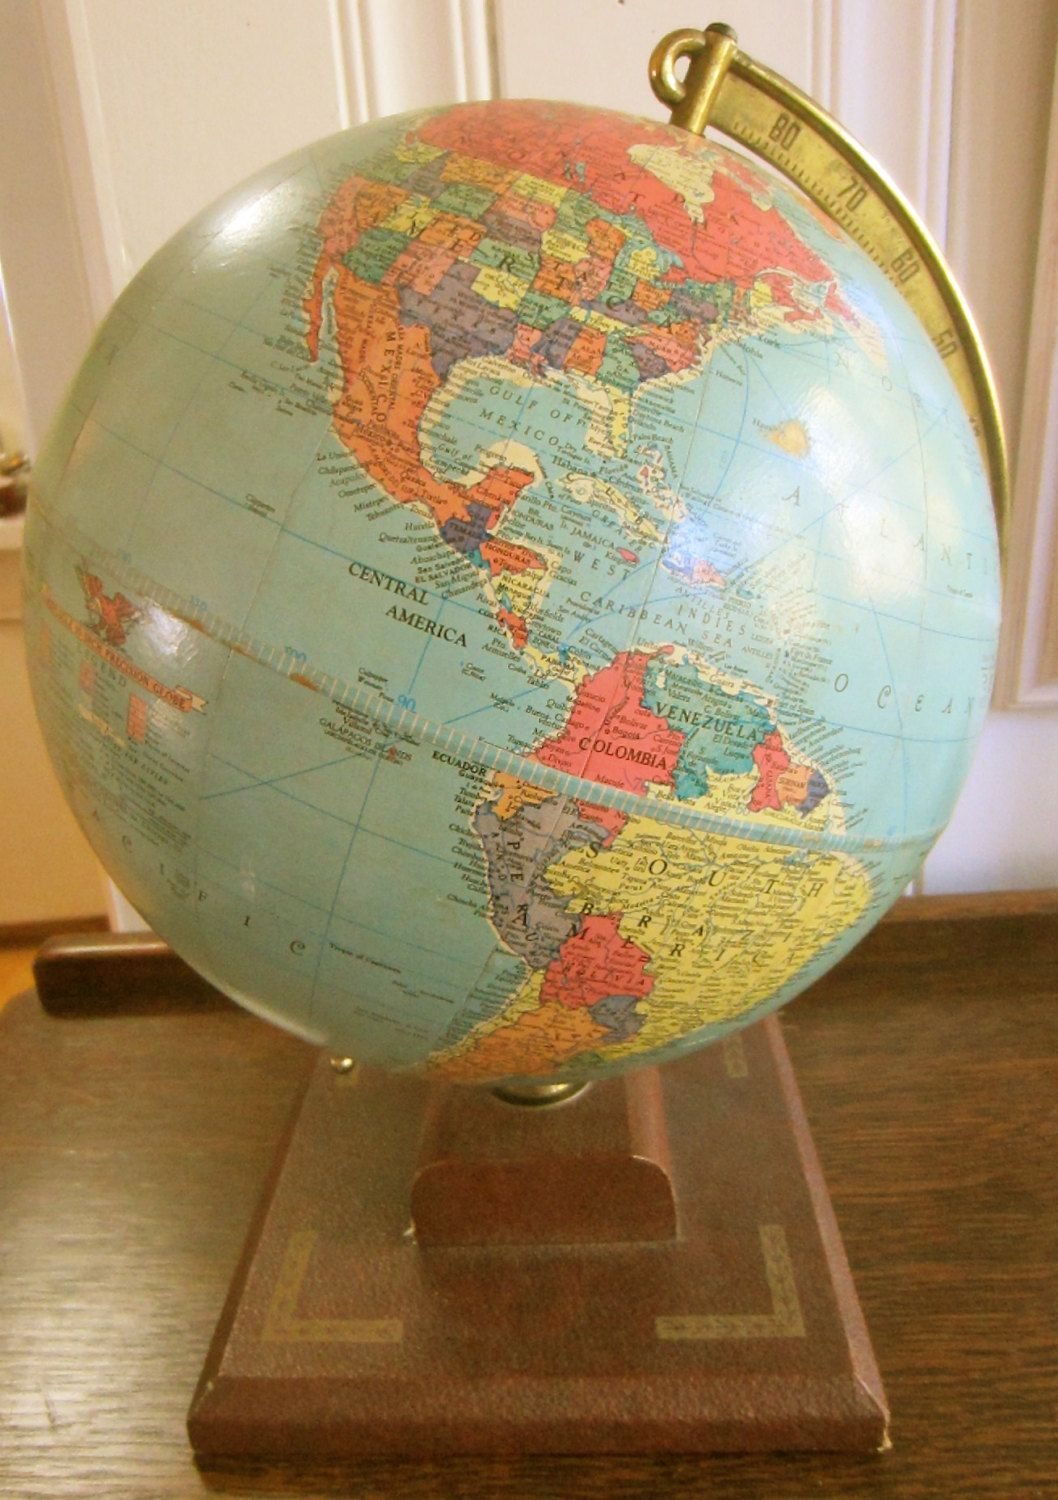 Charmant Antique / Vintage 10 Inch Replogle Precision Globe   World Globe   Home  Decor   Earth